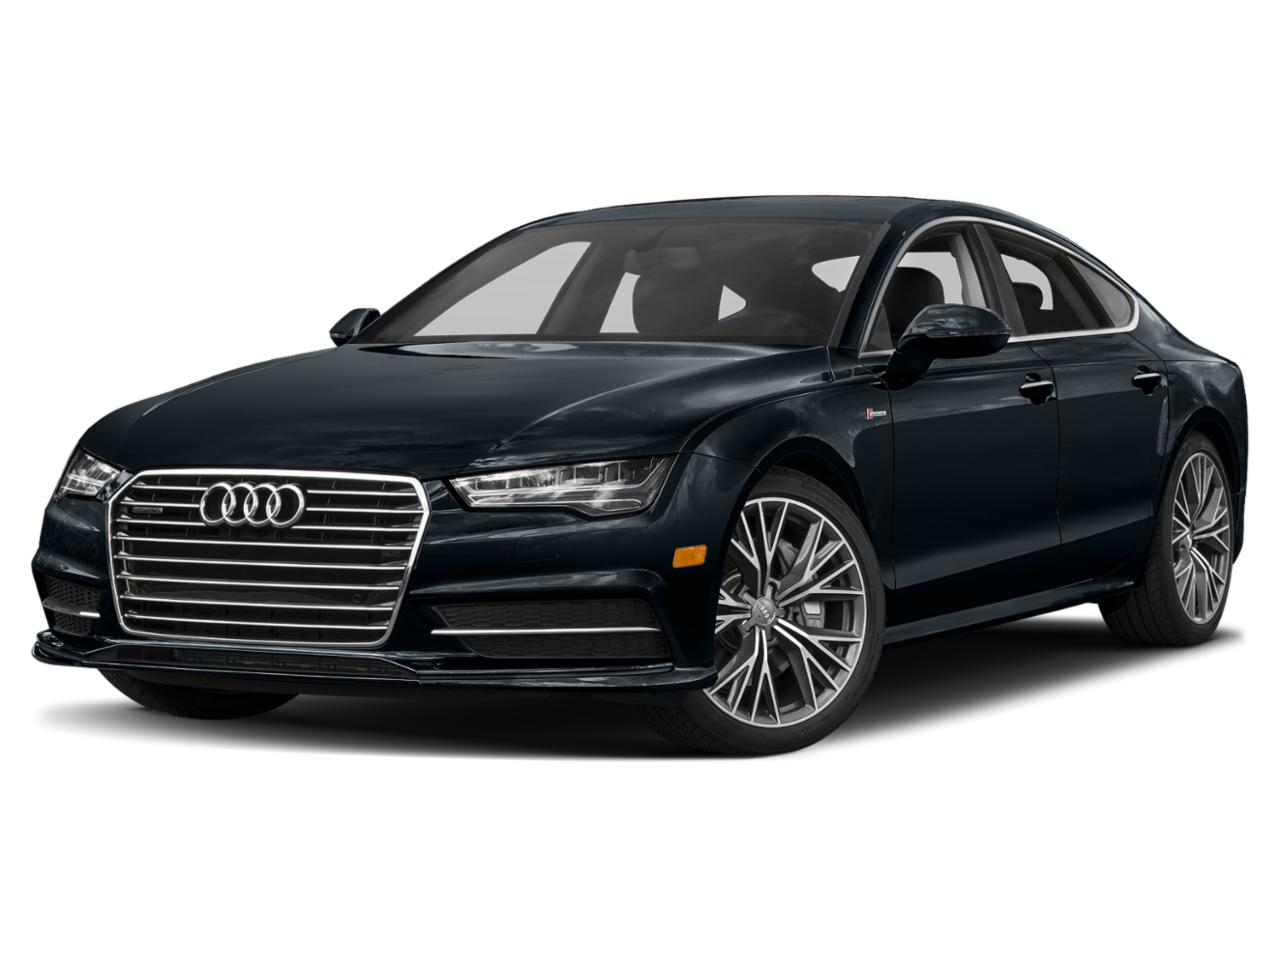 2018 Audi A7 Vehicle Photo in Allentown, PA 18103